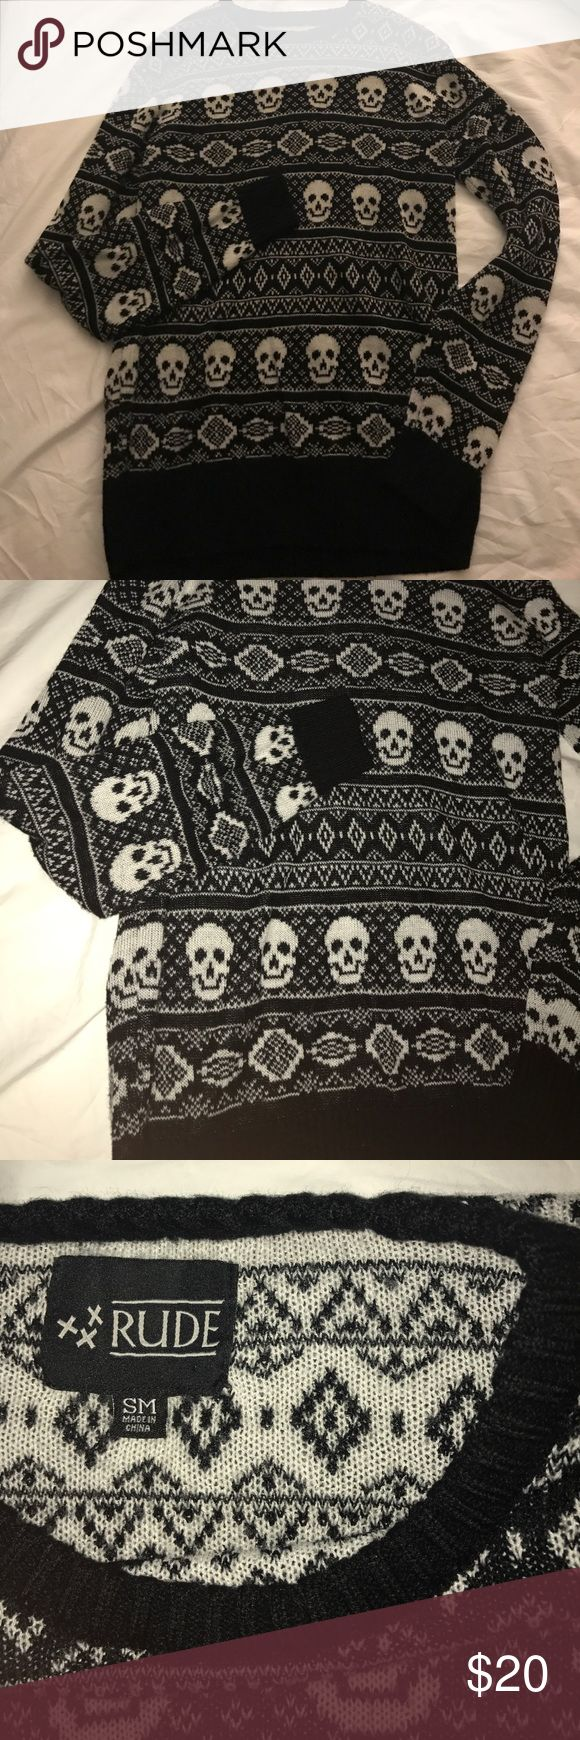 "Hot Topic Skull Sweater! Barely worn very comfy skull sweater. on the longer side, im 5'7"" and wear this with leggings. Its a small but stretchy, im normally a medium. Bundle for a cheaper price ✨💜 Hot Topic Sweaters"